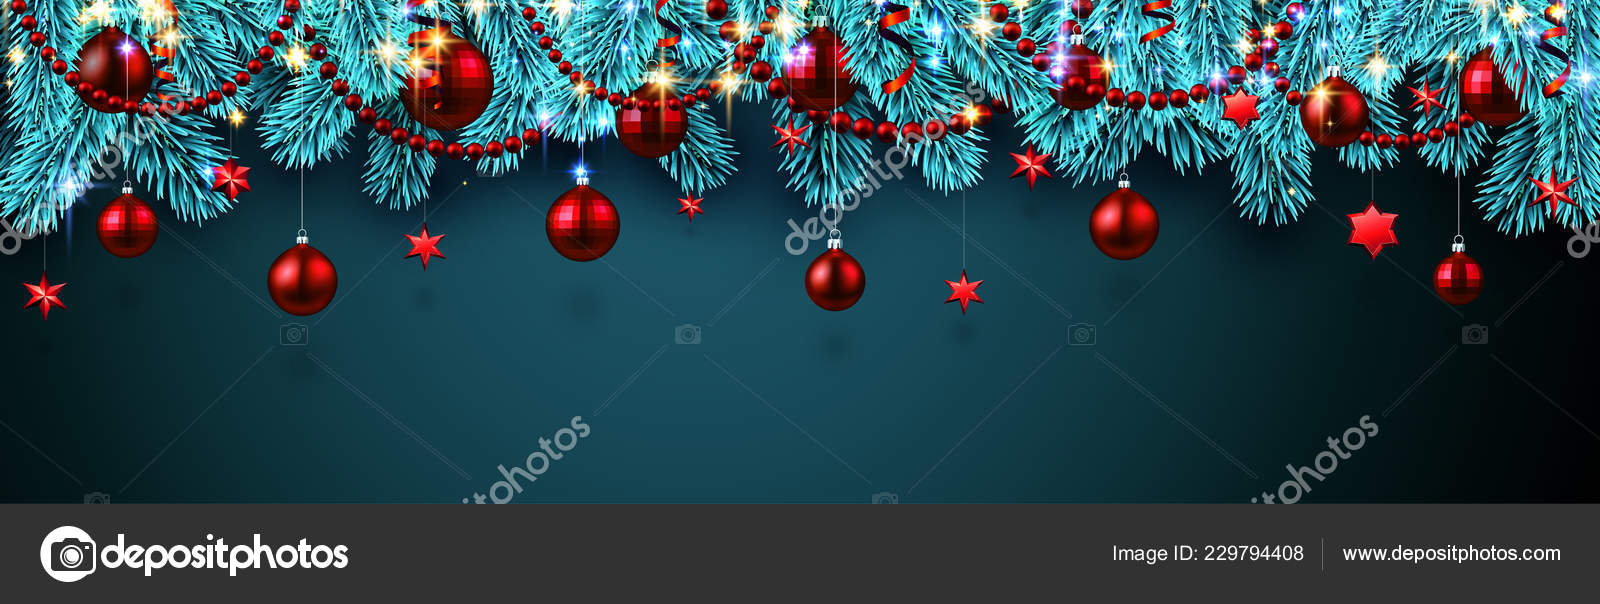 blue christmas and new year banner with fir branches and red shiny christmas balls and stars festive design vector illustration vector by maxborovkov